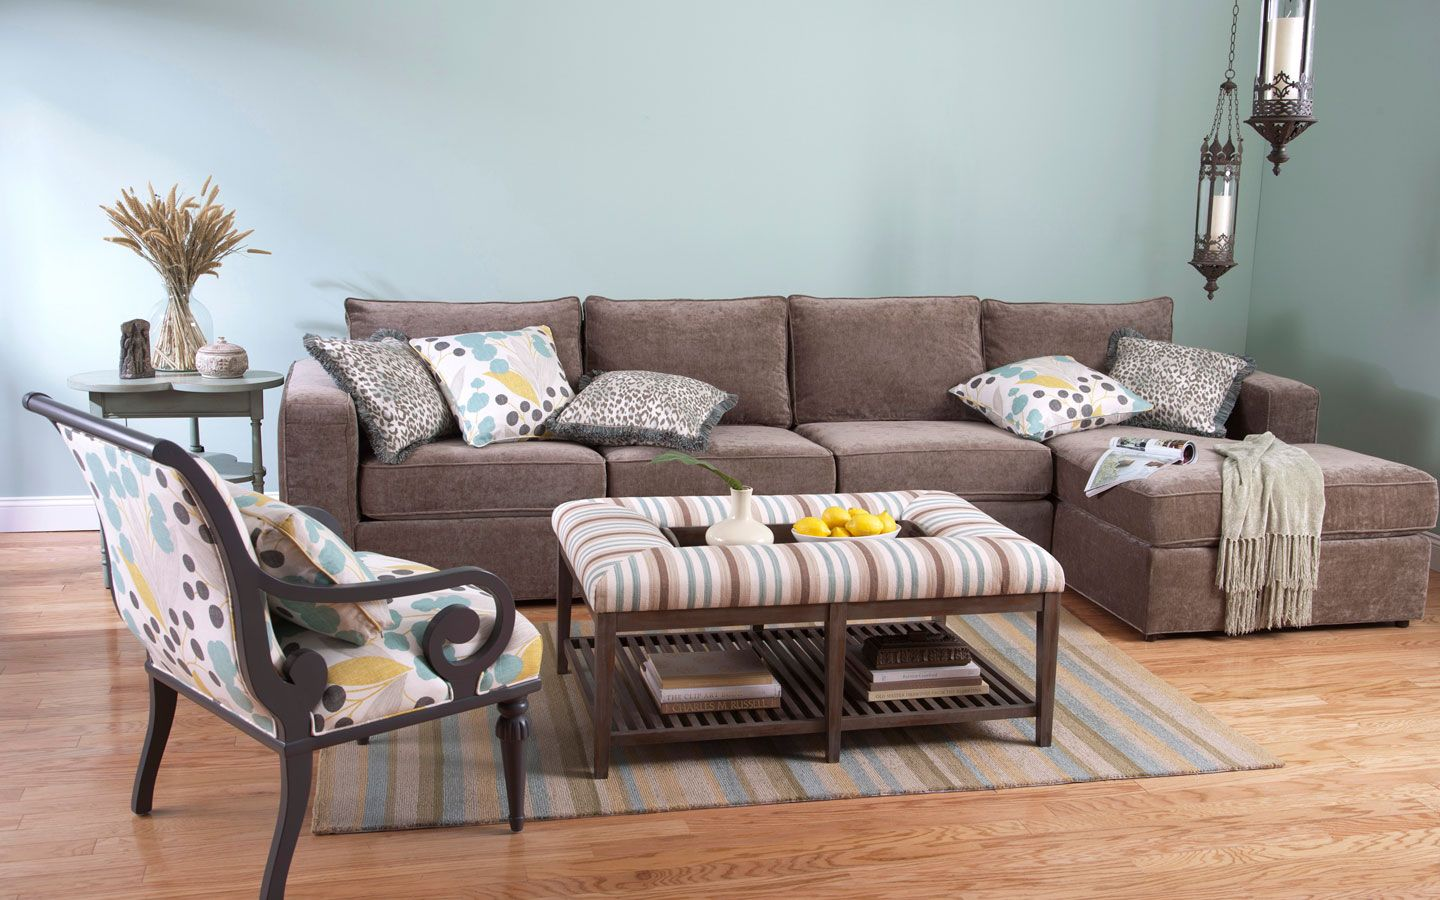 Charmant MILFORD SECTIONAL From Norwalk Furniture. Available At ETC For The Home In  Bloomington, Indiana. #sectional